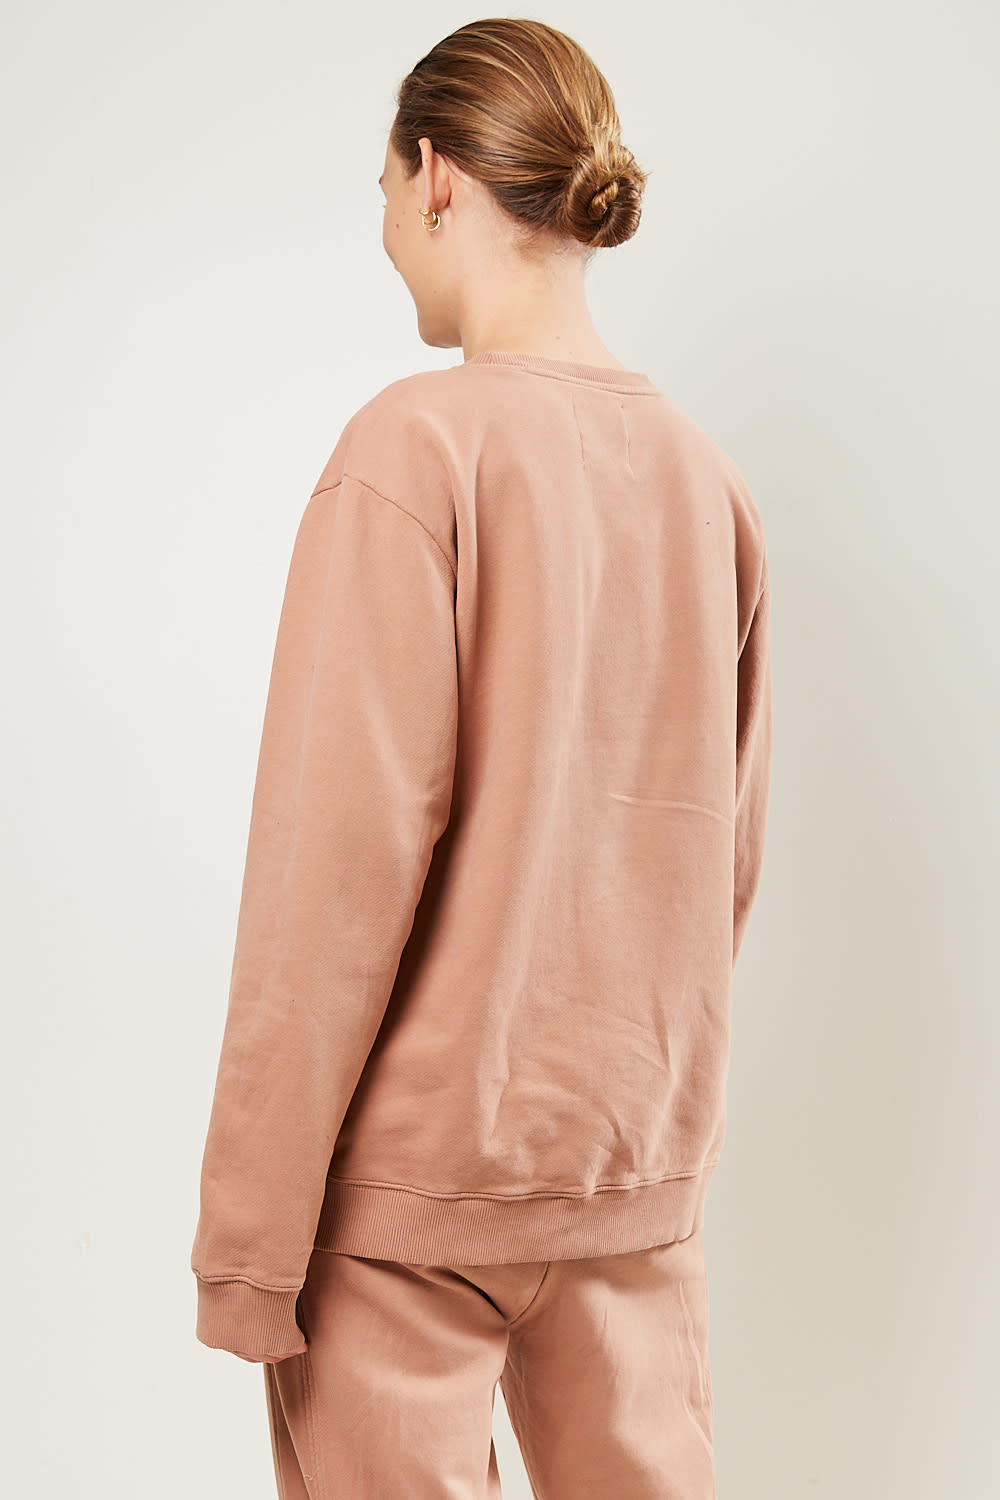 Humanoid - Trixy sld tanner sweater